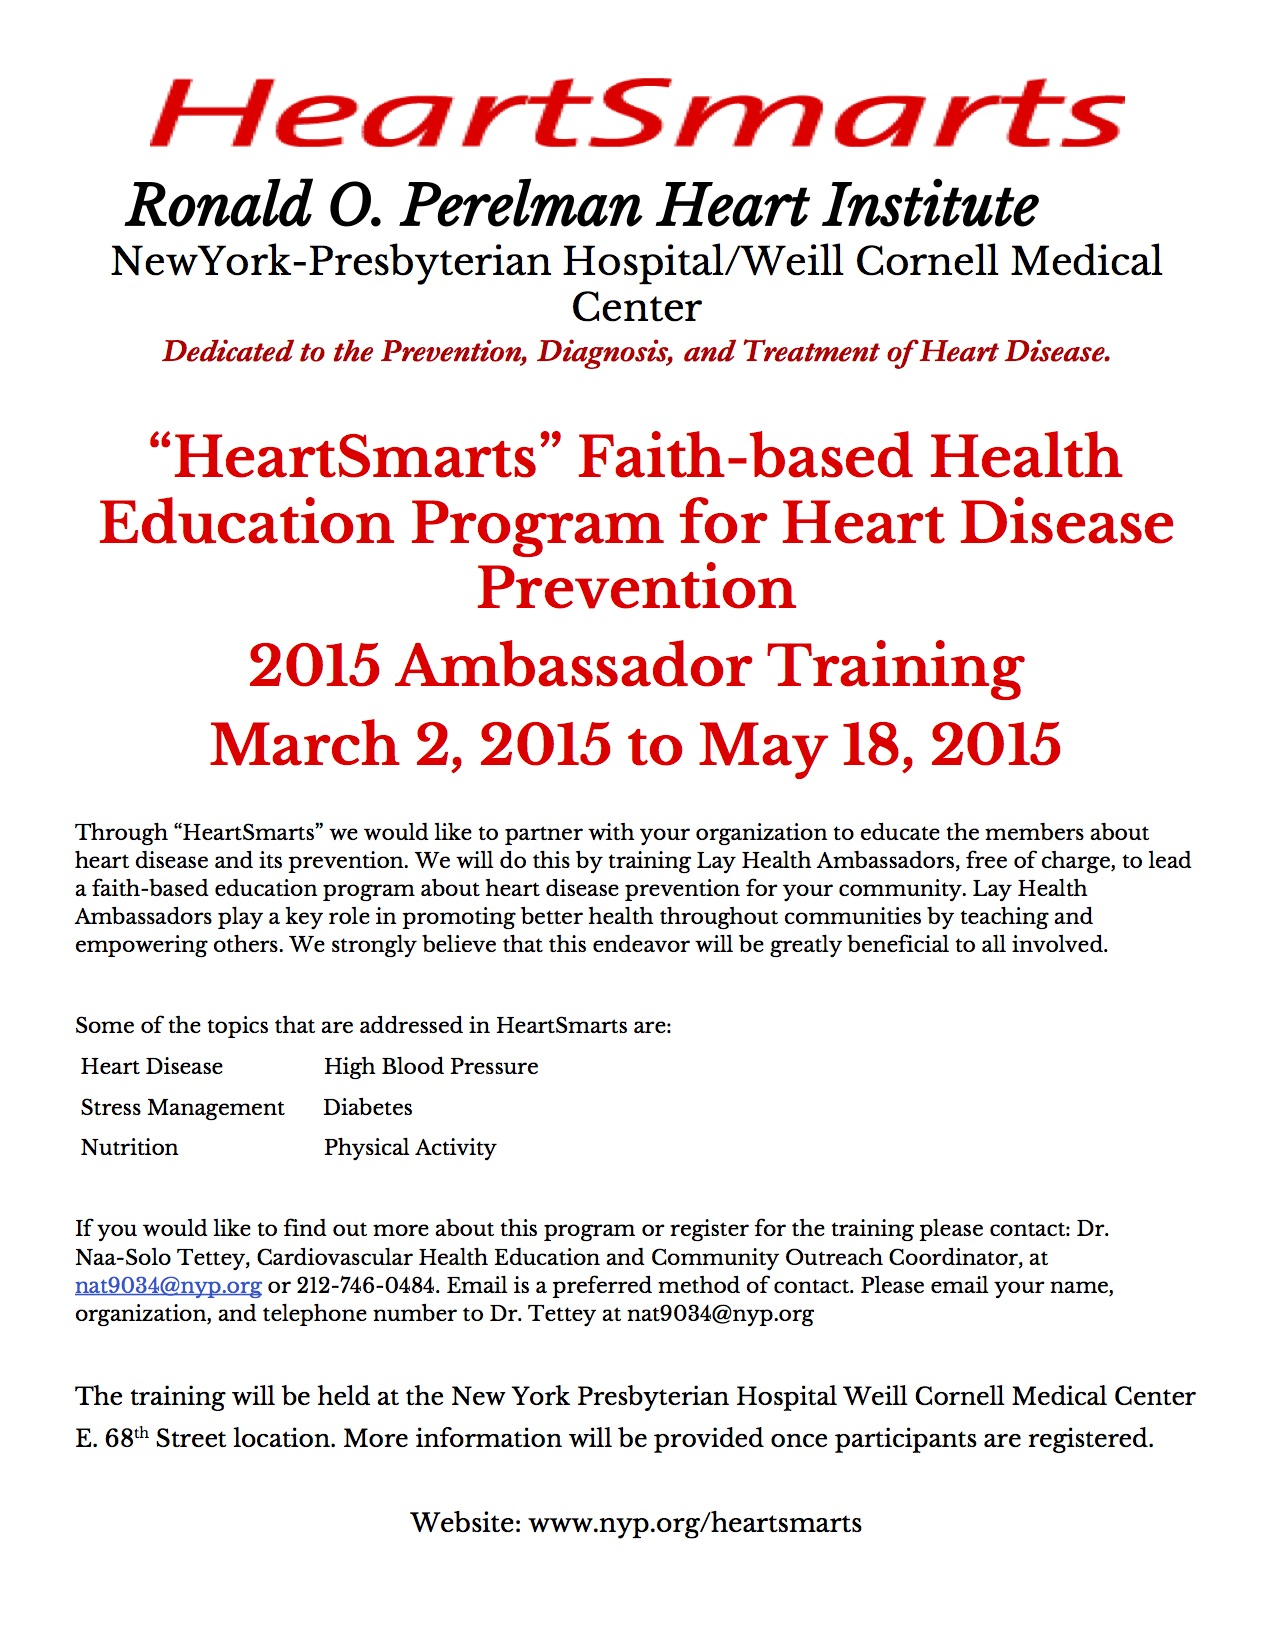 HeartSmartsAmbassadorTraining2015Flier2-30